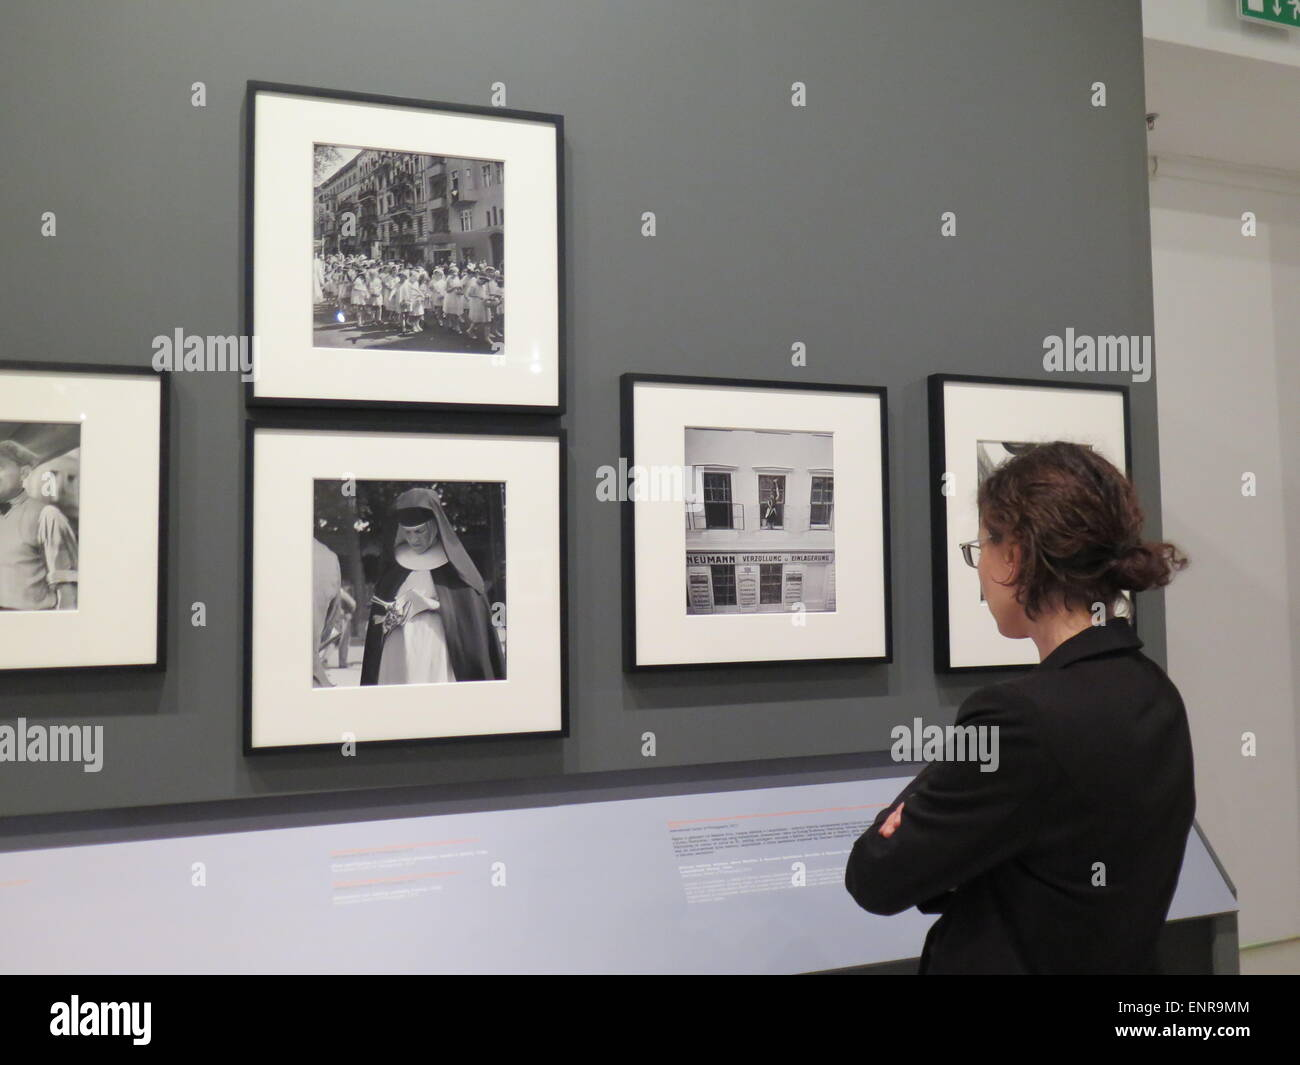 A visitor looks at the exhibition of photographs by Roman Vishniac in Warsaw, Poland. The exhibition on the Roman - Stock Image